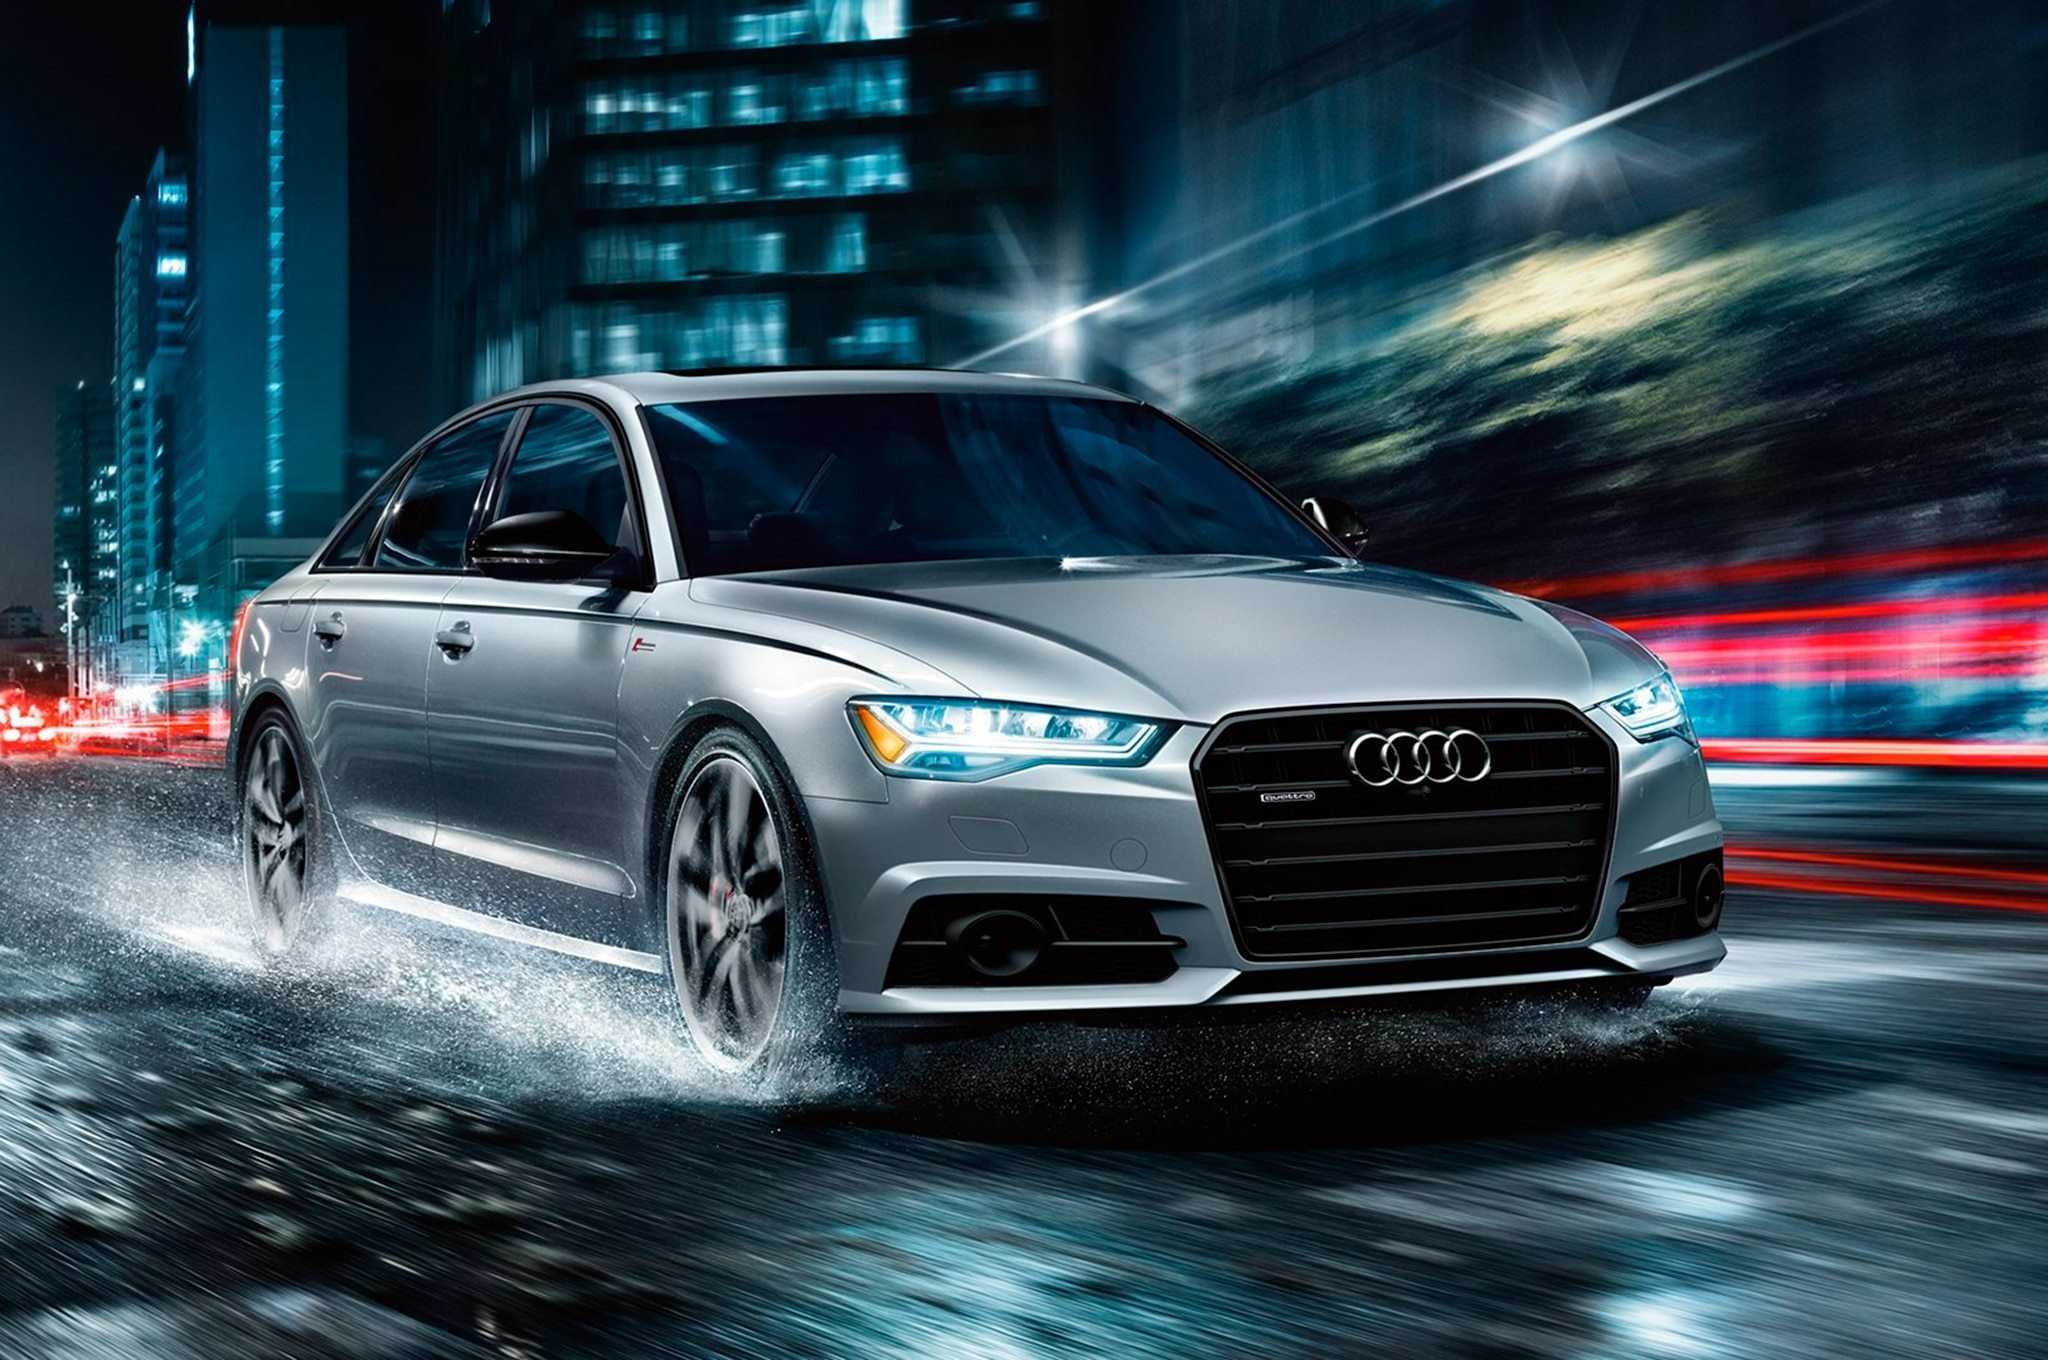 Latest 2017 Audi A6 And A7 Gain New Tech And Mild Exterior Free Download